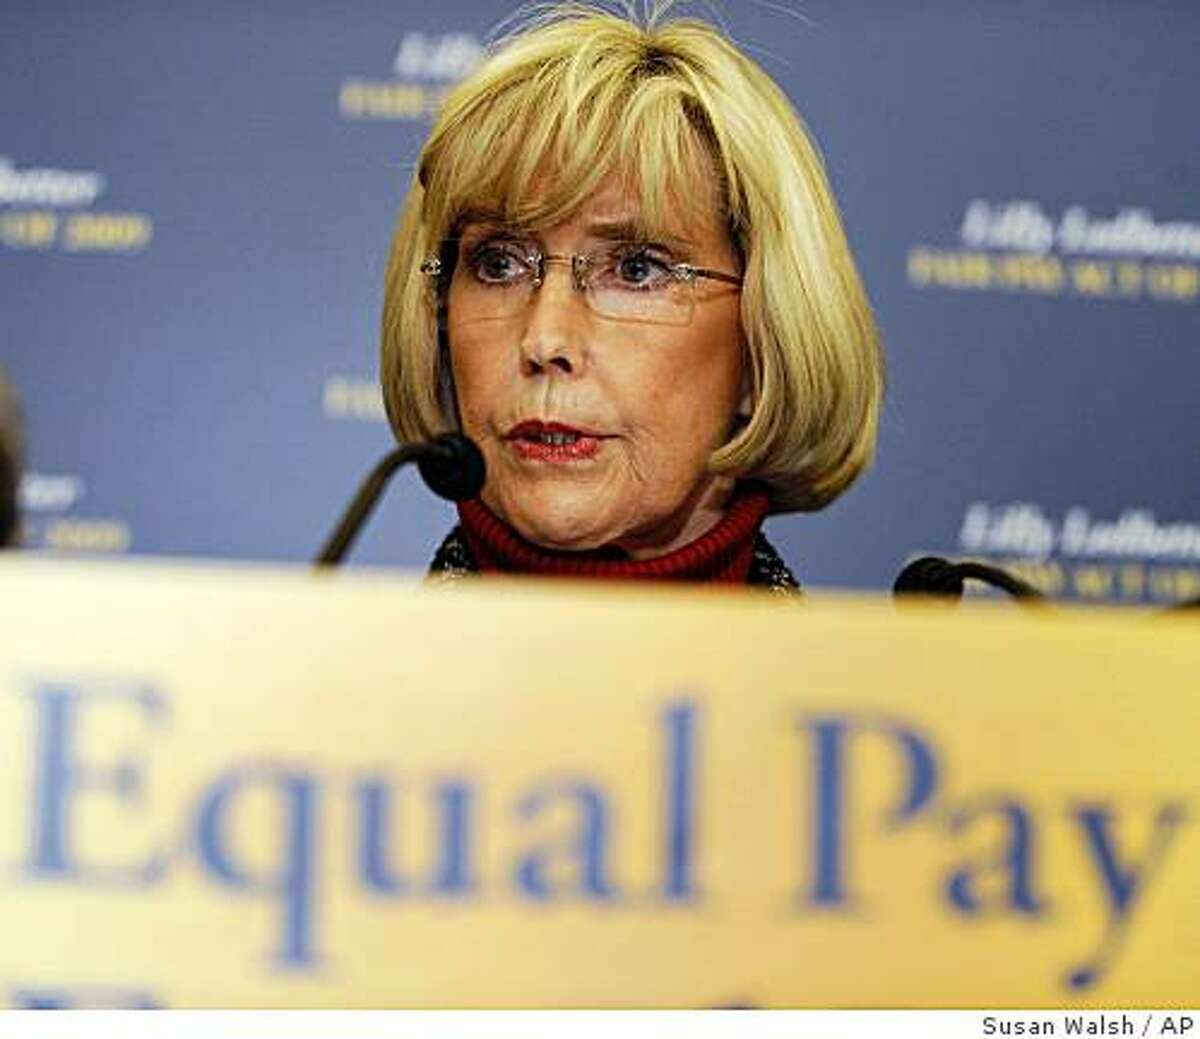 ** FILE ** In this Jan. 22, 2009 file photo. Lilly Ledbetter, an Alabama Goodyear Tire & Rubber Co. worker, speaks during a news conference on Capitol Hill in Washington. Congress sends the White House its first legislation in Barack Obama's presidency, a bill that allows women to sue retroactively for pay and other workplace discrimination that occurred years, even decades in the past. It has been a priority for women's groups seeking to narrow the wage gap between men and women. More than four decades after the 1964 Civil Right Act banned wage disparity based gender race, women still receive only about 78 cents for every dollar earned by me doing the same work. (AP Photo/Susan Walsh, File)